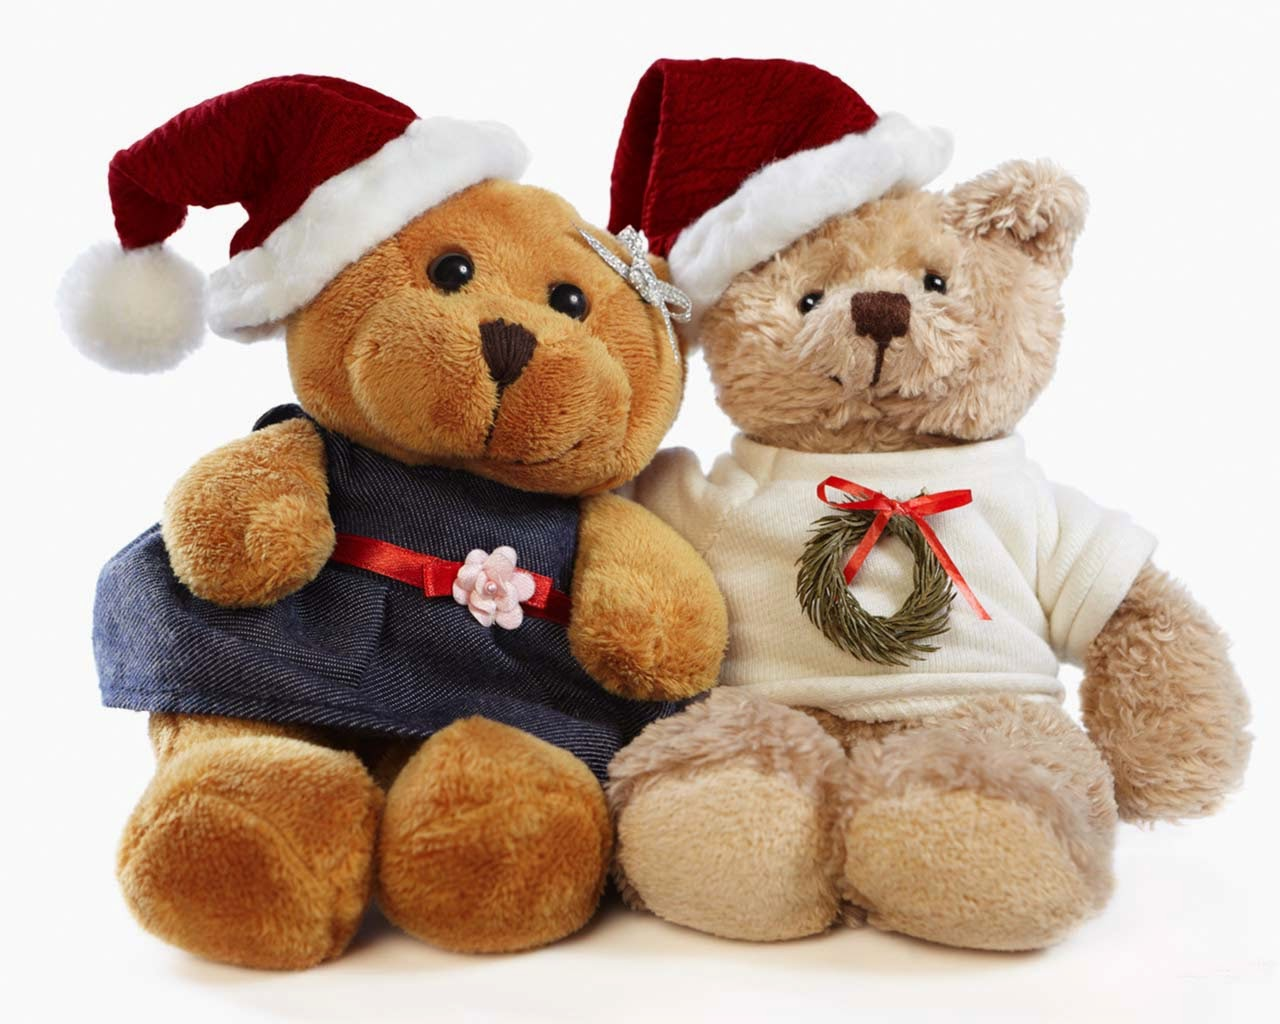 Lovely Teddy Bears Hd Nice Image